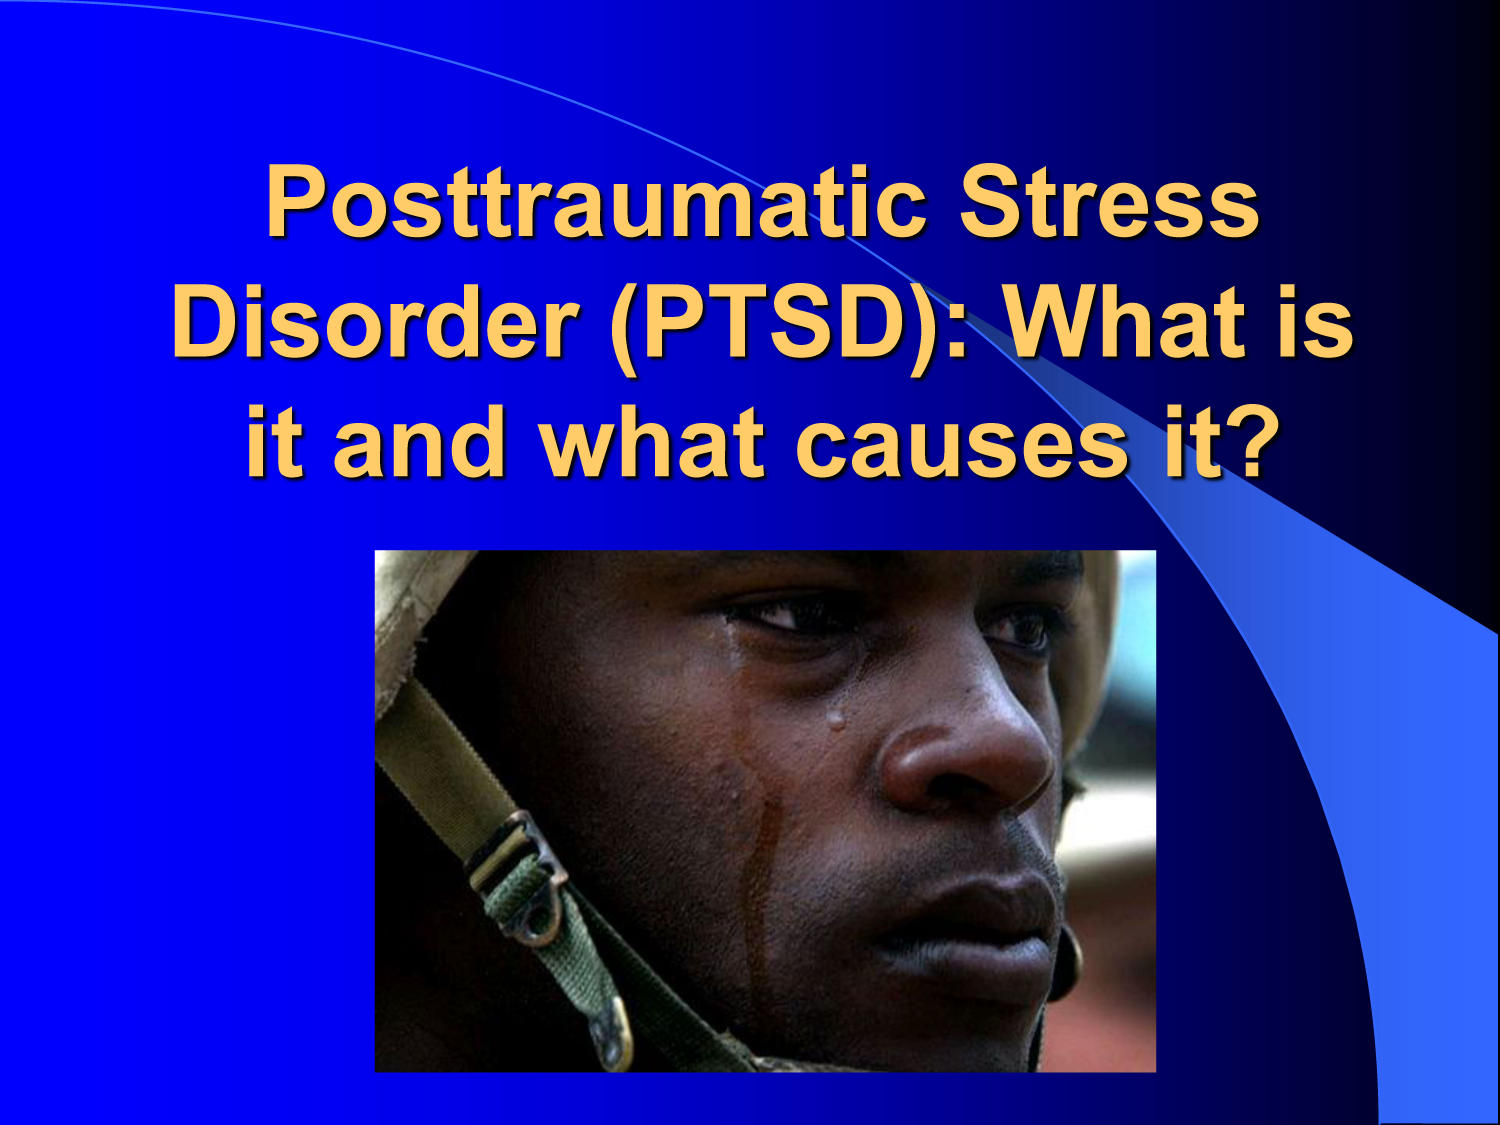 Posttraumatic Stress Disorder (PTSD): What is it and what causes it?                                                                                                      [Sequence #]: 1 of 17